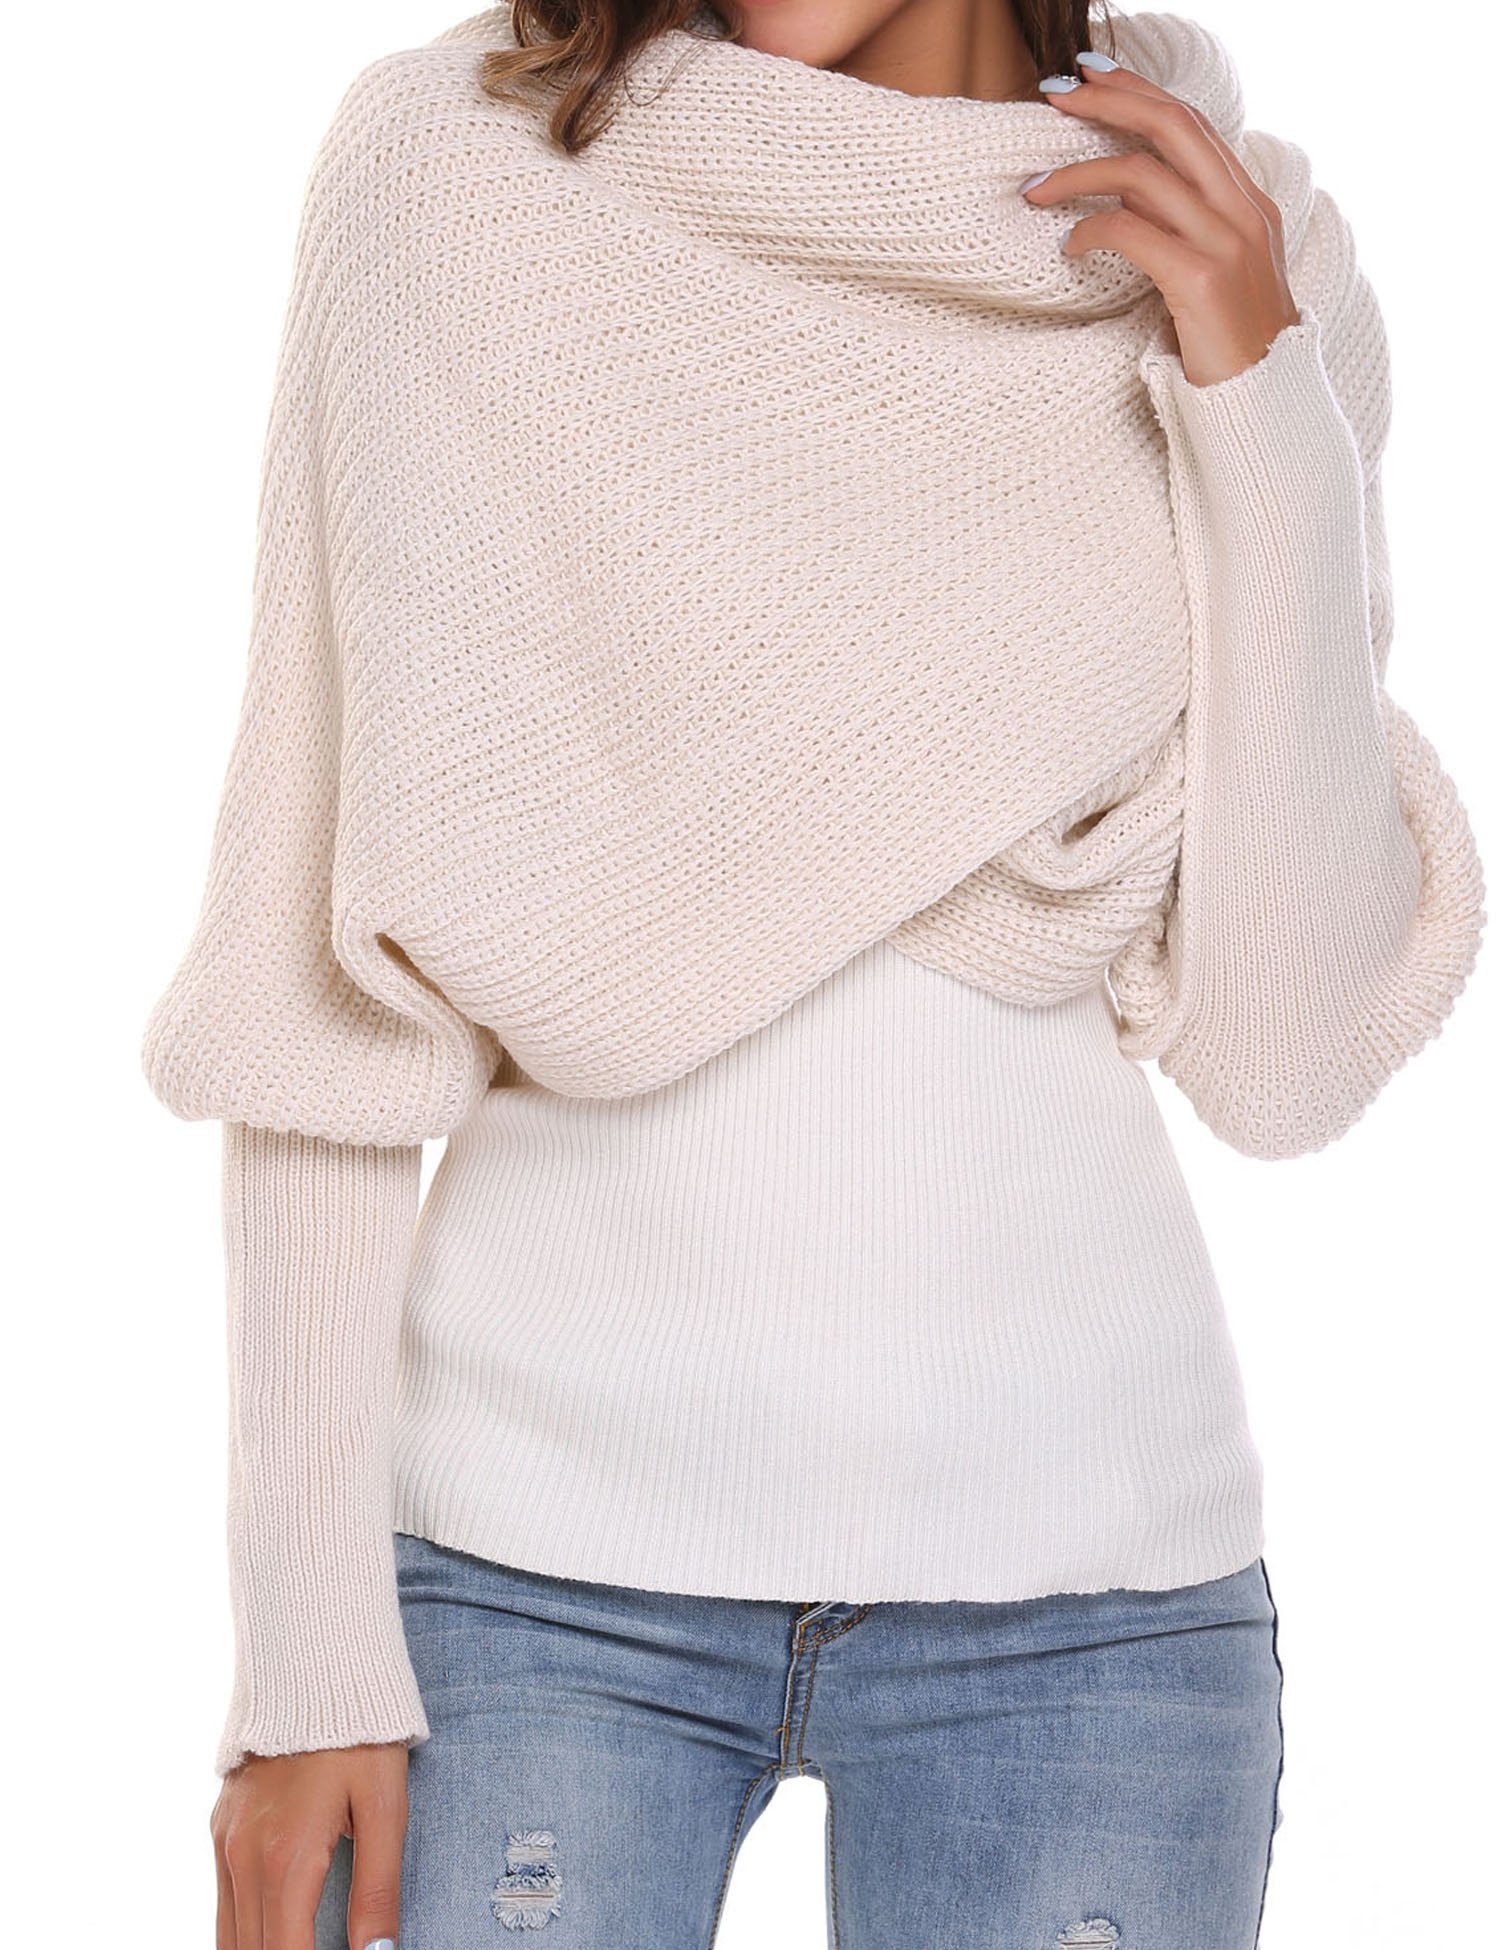 Women Men Winter Thick Cable Knit Wrap Chunky Warm Scarf All Colors Coat,Beige,One Size